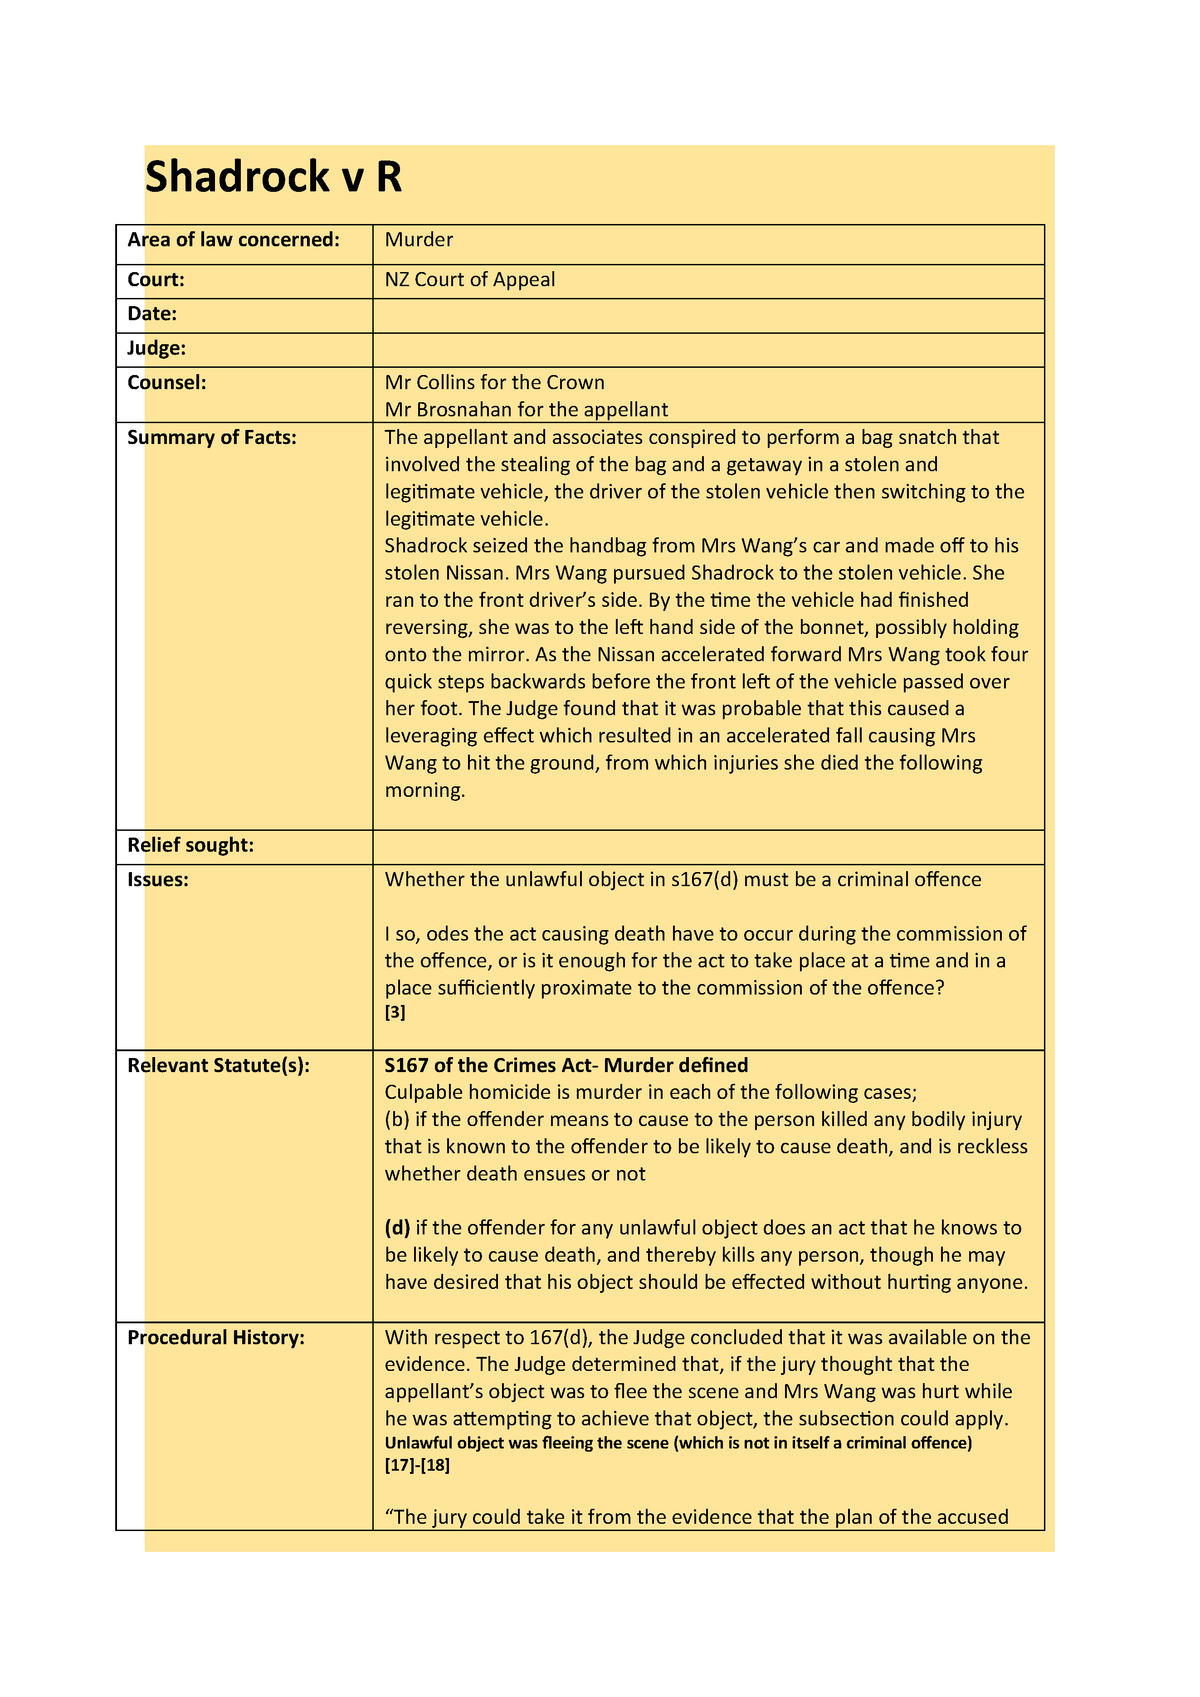 Shadrock v R - Detailed case brief, including paragraph/page